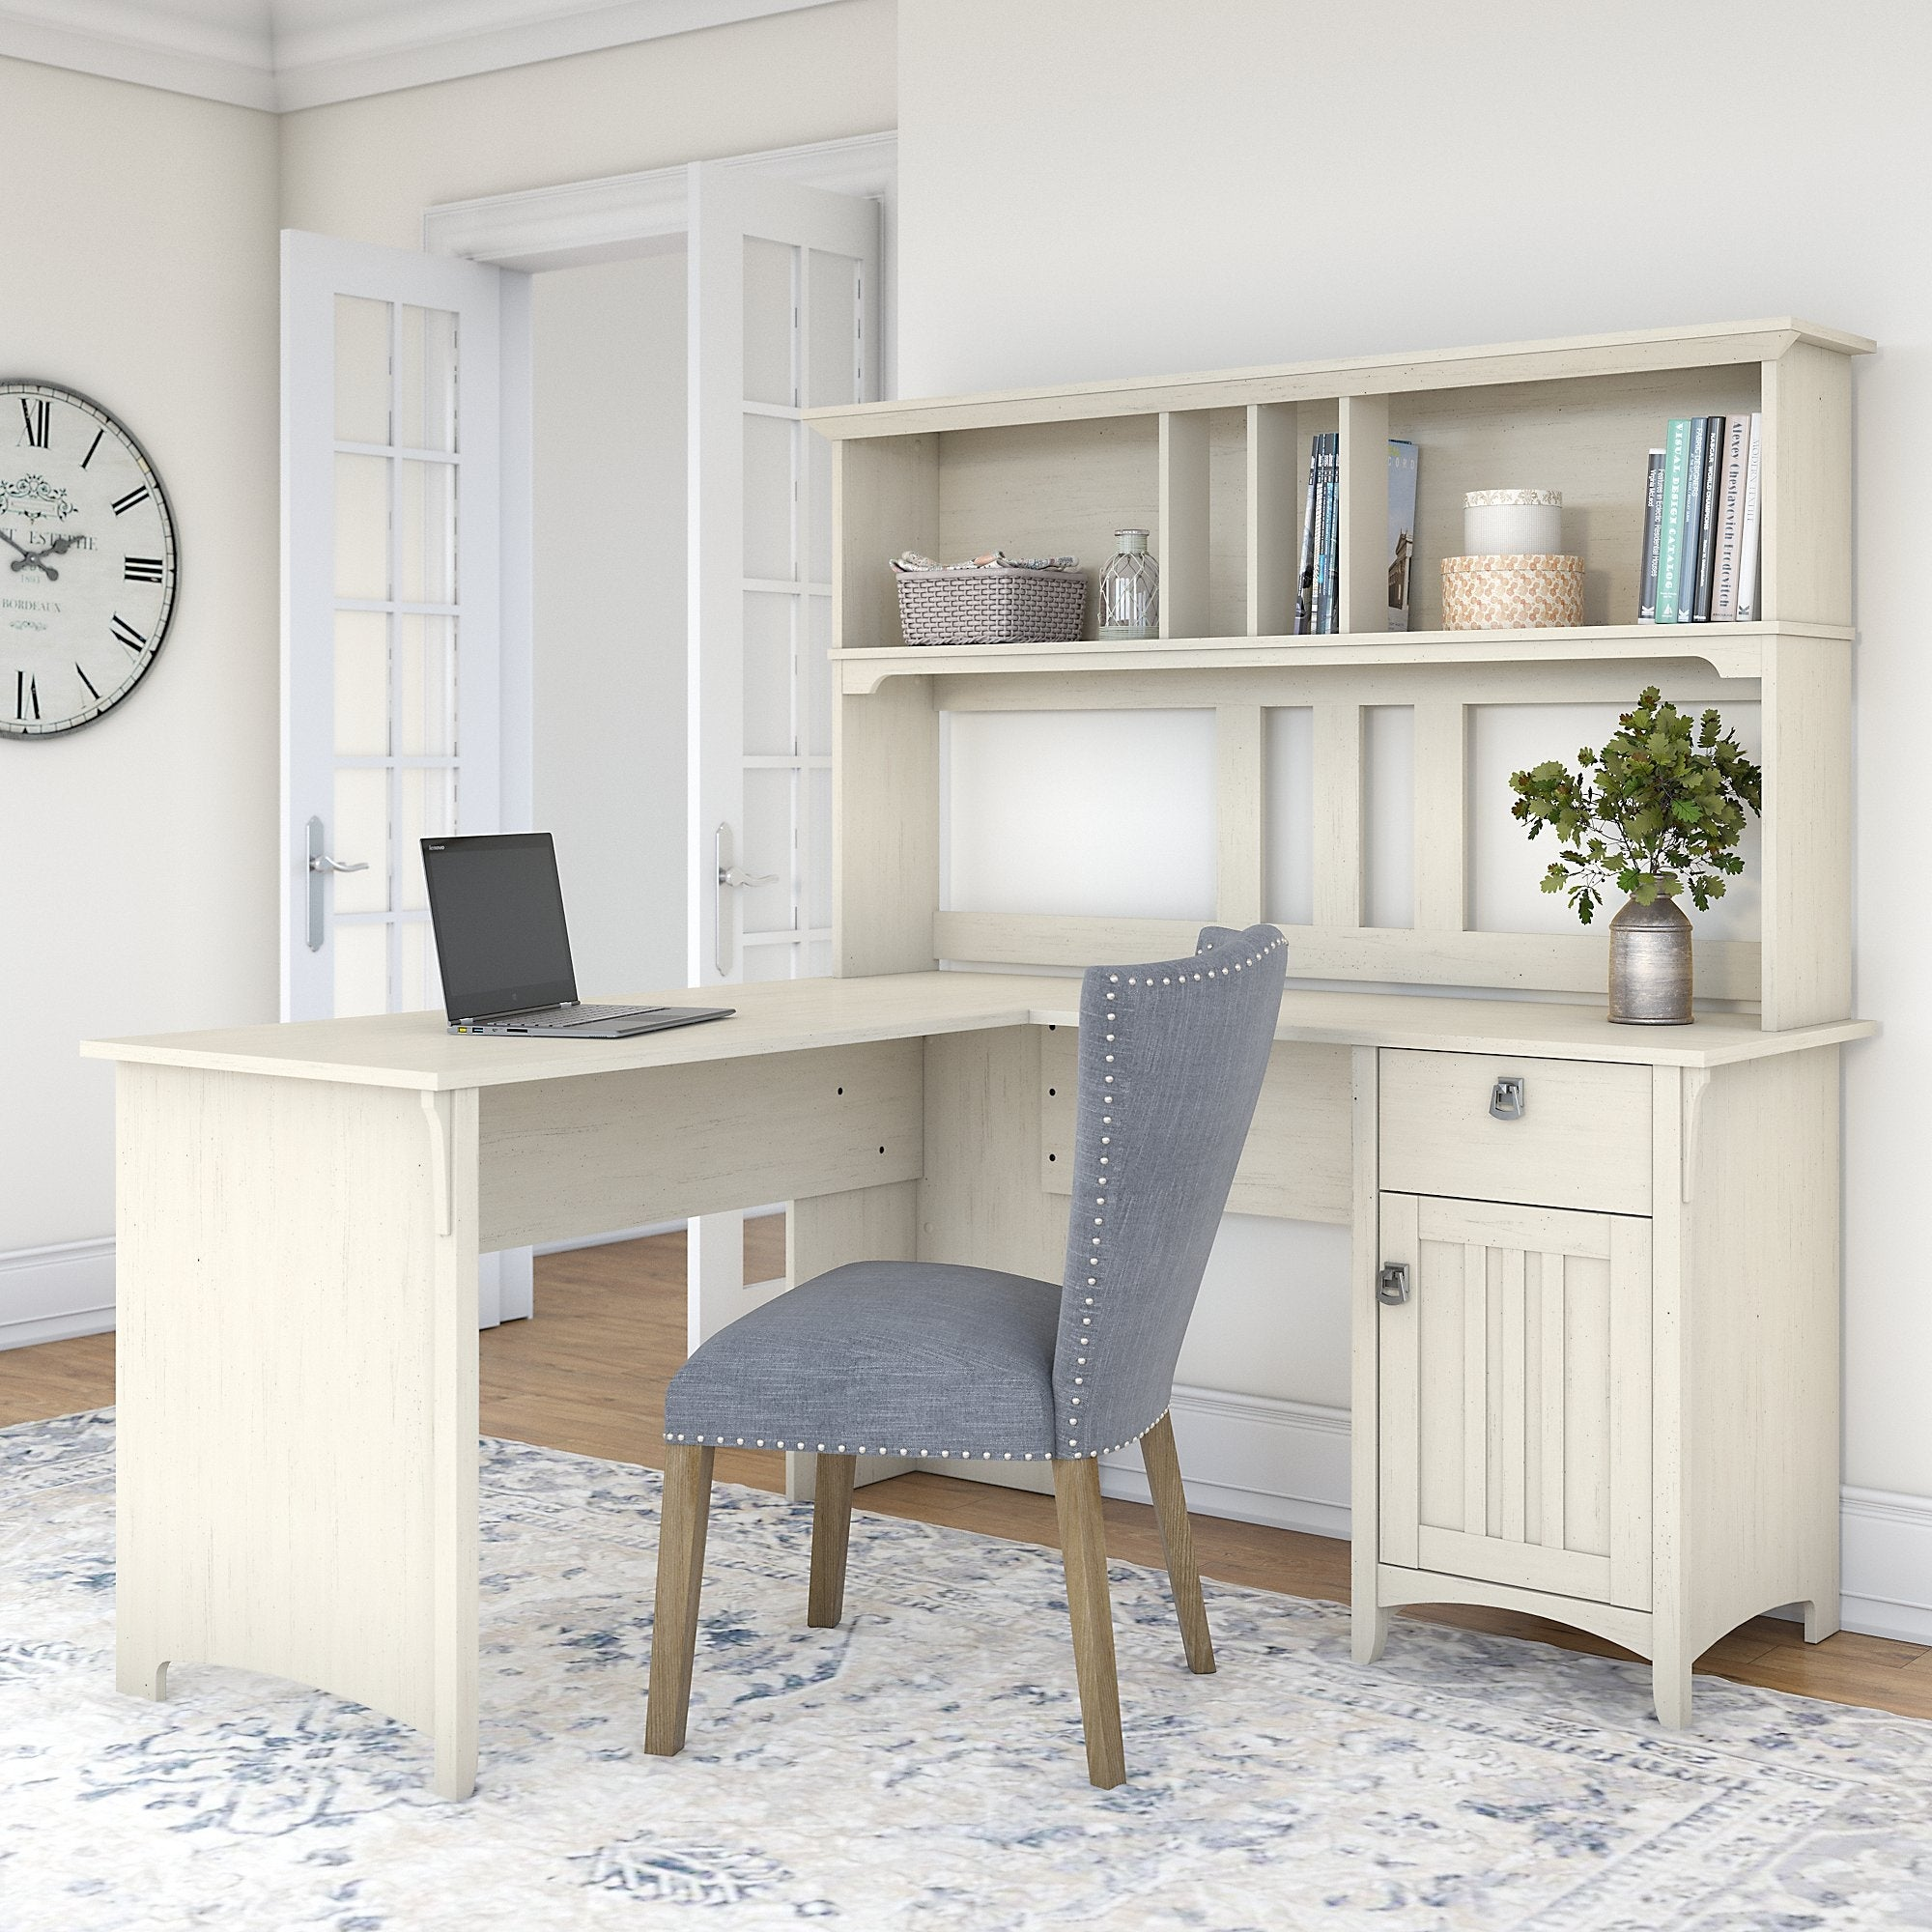 The Gray Barn Ermine 60 Inch L Shaped Desk With Hutch Overstock 26263304